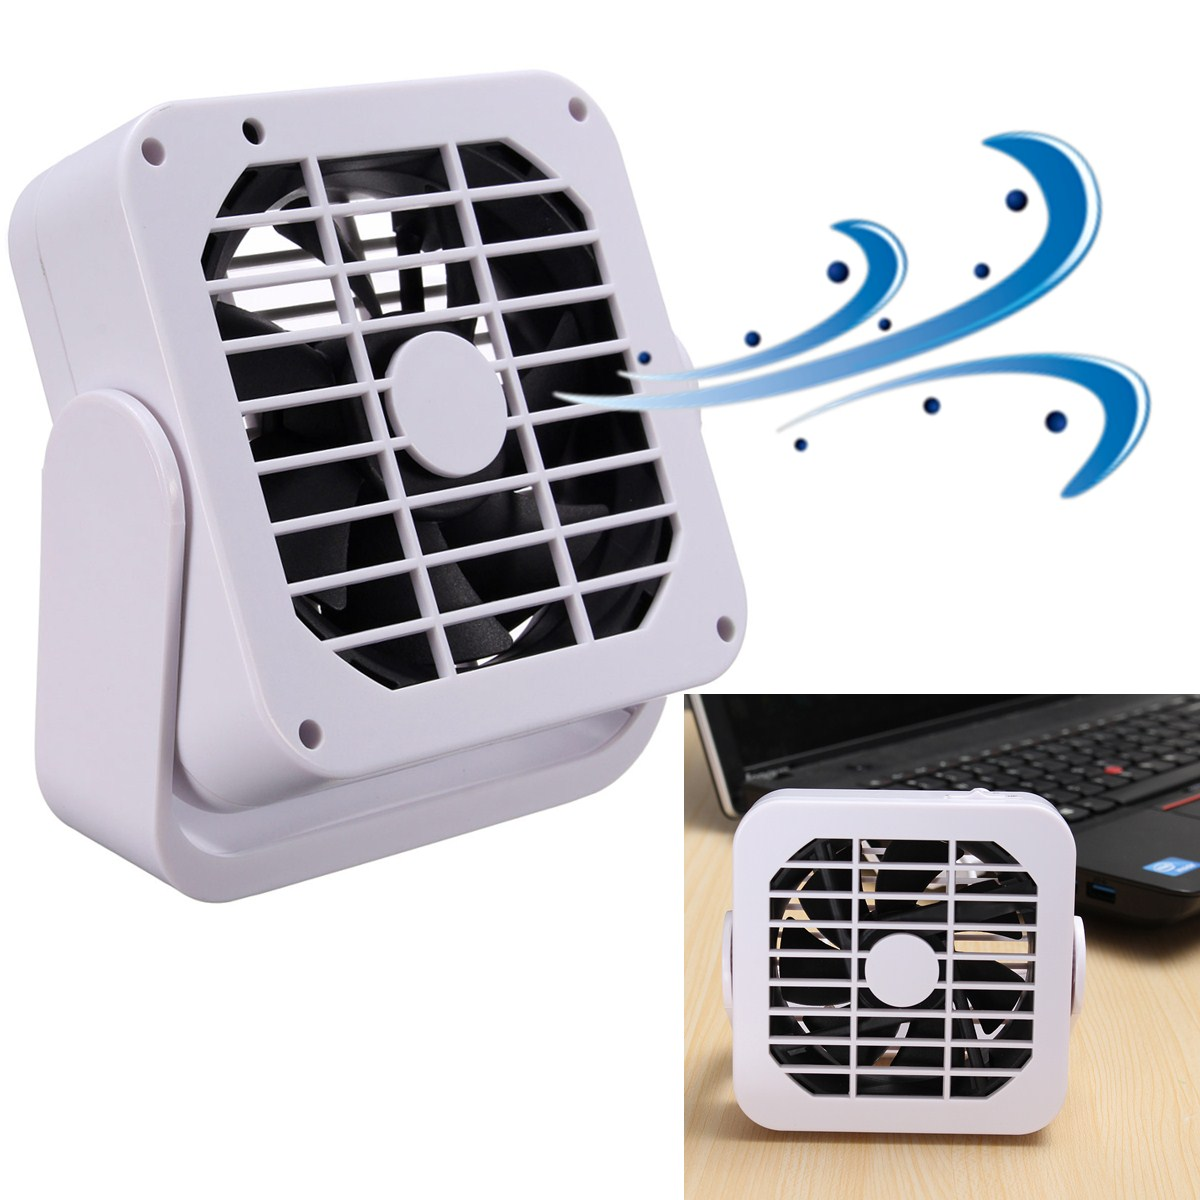 360 magn tique mini usb fan refroidisseur ventilateur silencieux pour laptop pc ebay. Black Bedroom Furniture Sets. Home Design Ideas